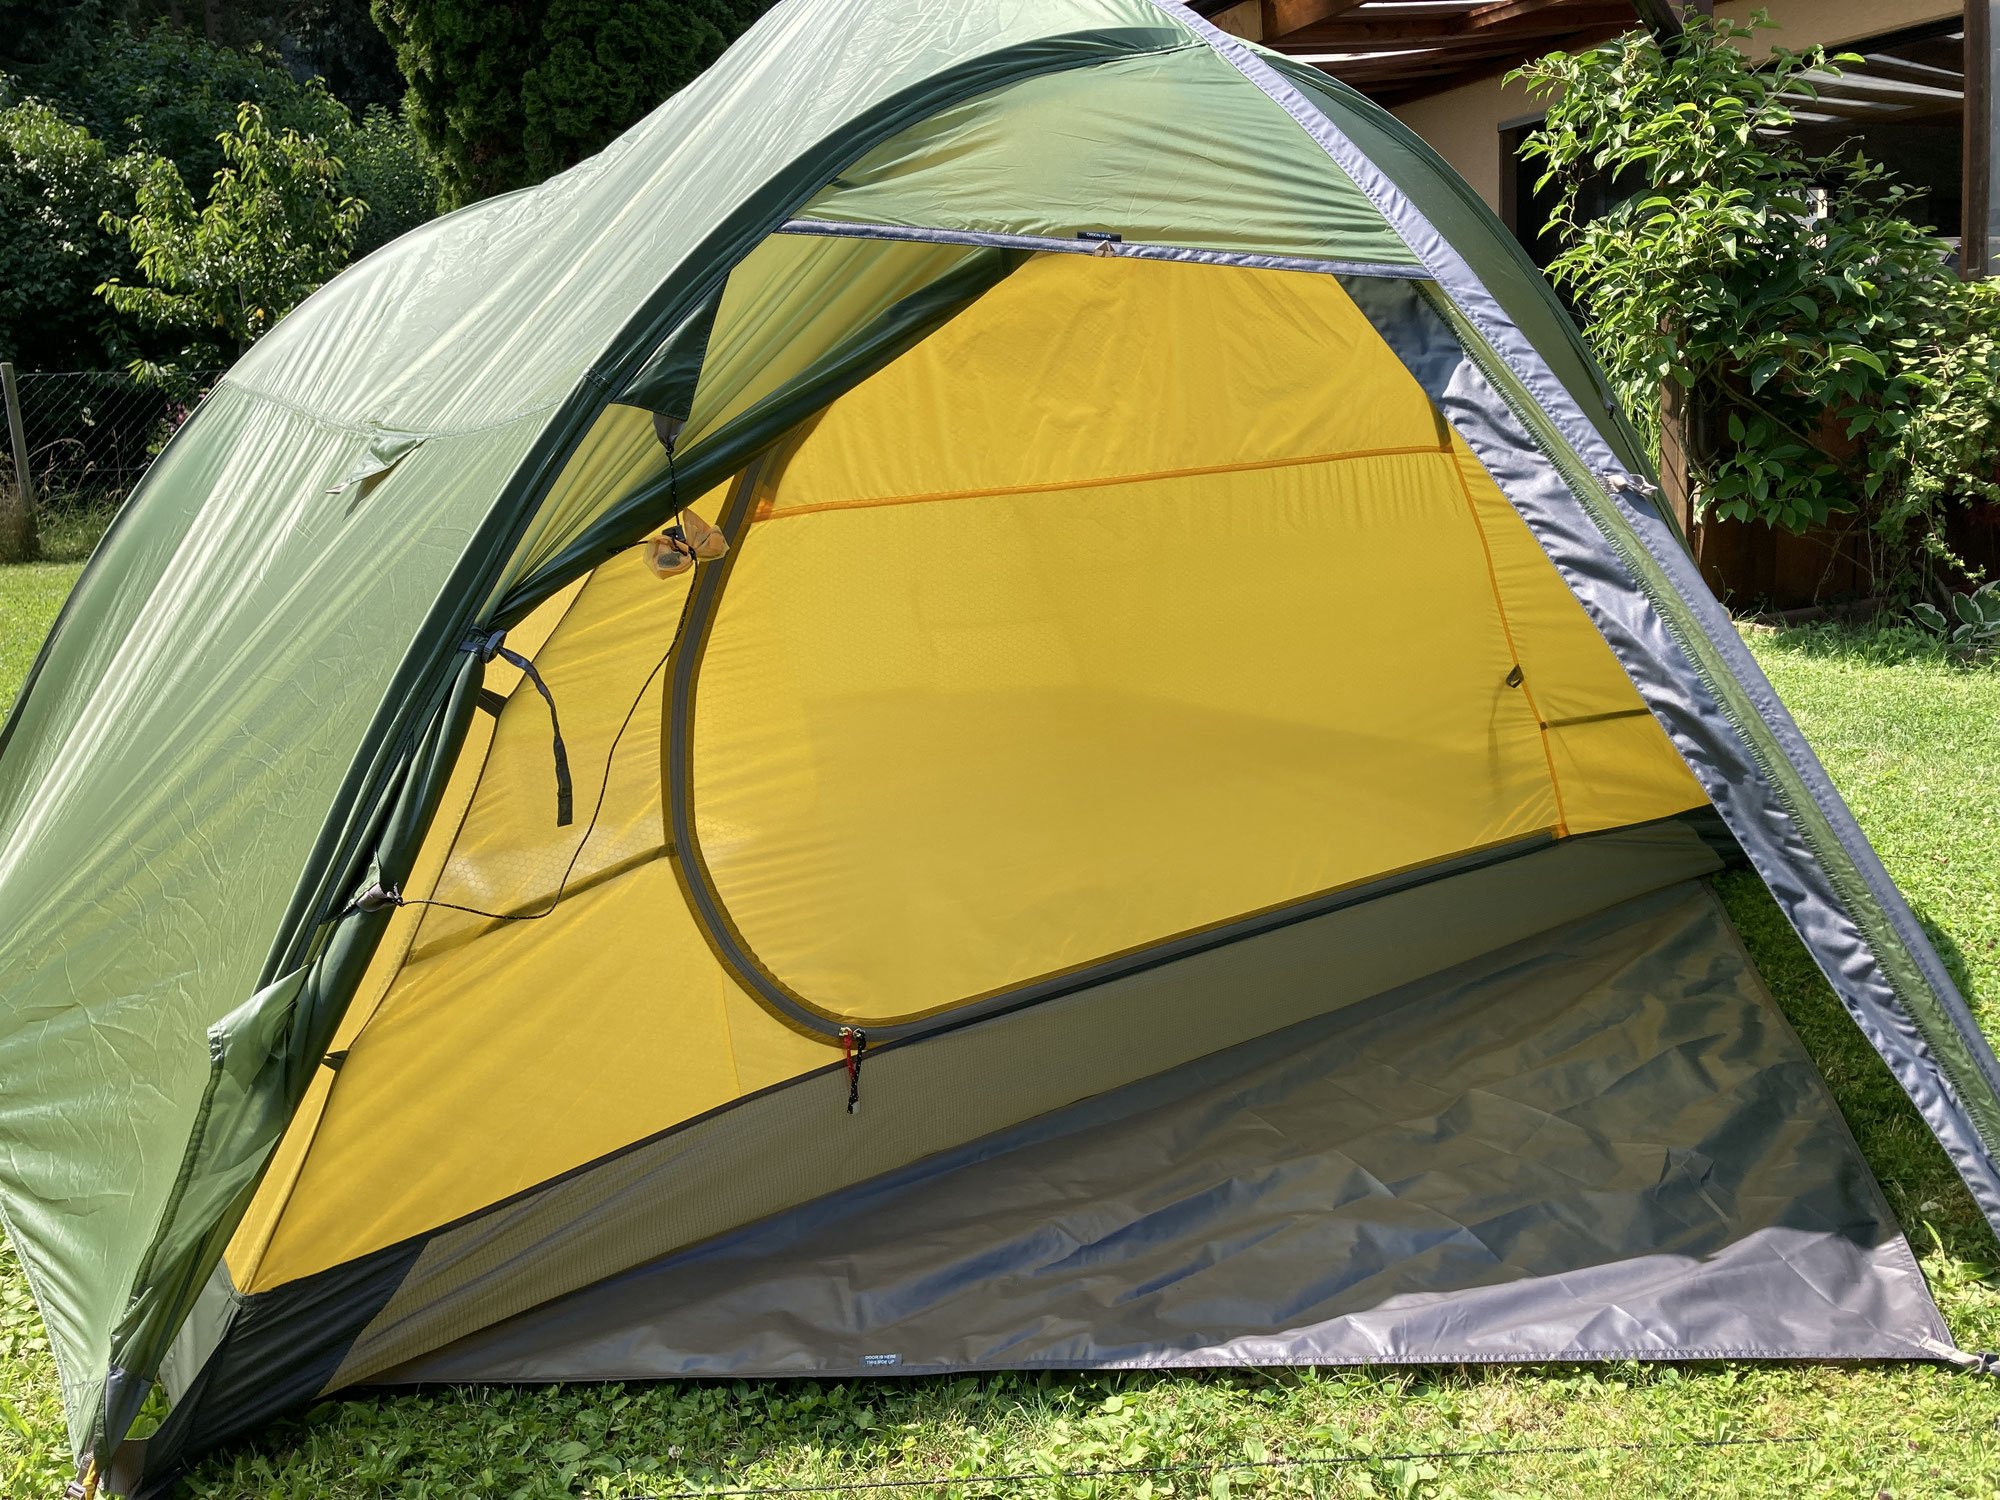 Mein neues Exped Orion 3 UL Zelt